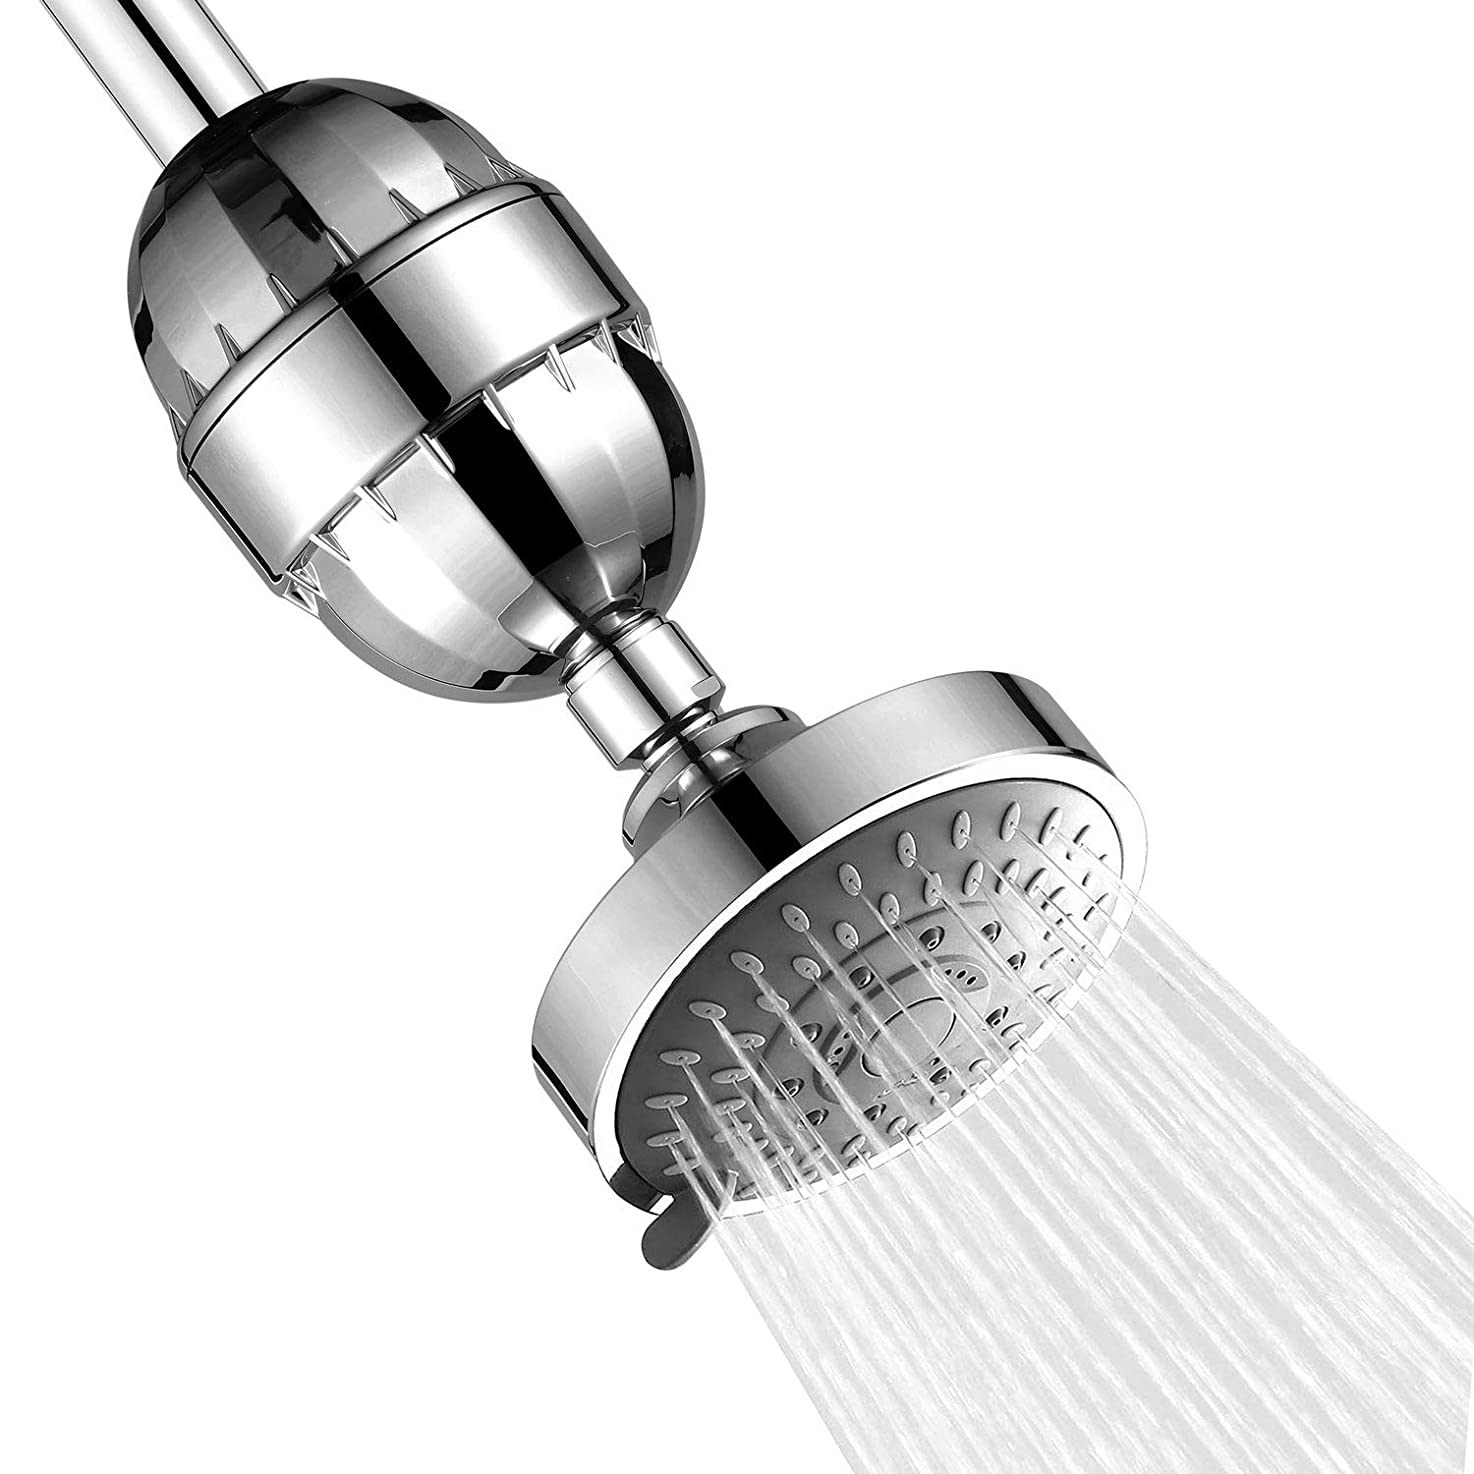 4'' High Pressure Rain Shower Head with Shower Filter, 5-setting Adjustable Rainfall Shower Head,15 Stage Replaceable Showerhead Filter For Hard Water Removes Chlorine and Harmful Substances - Chrome